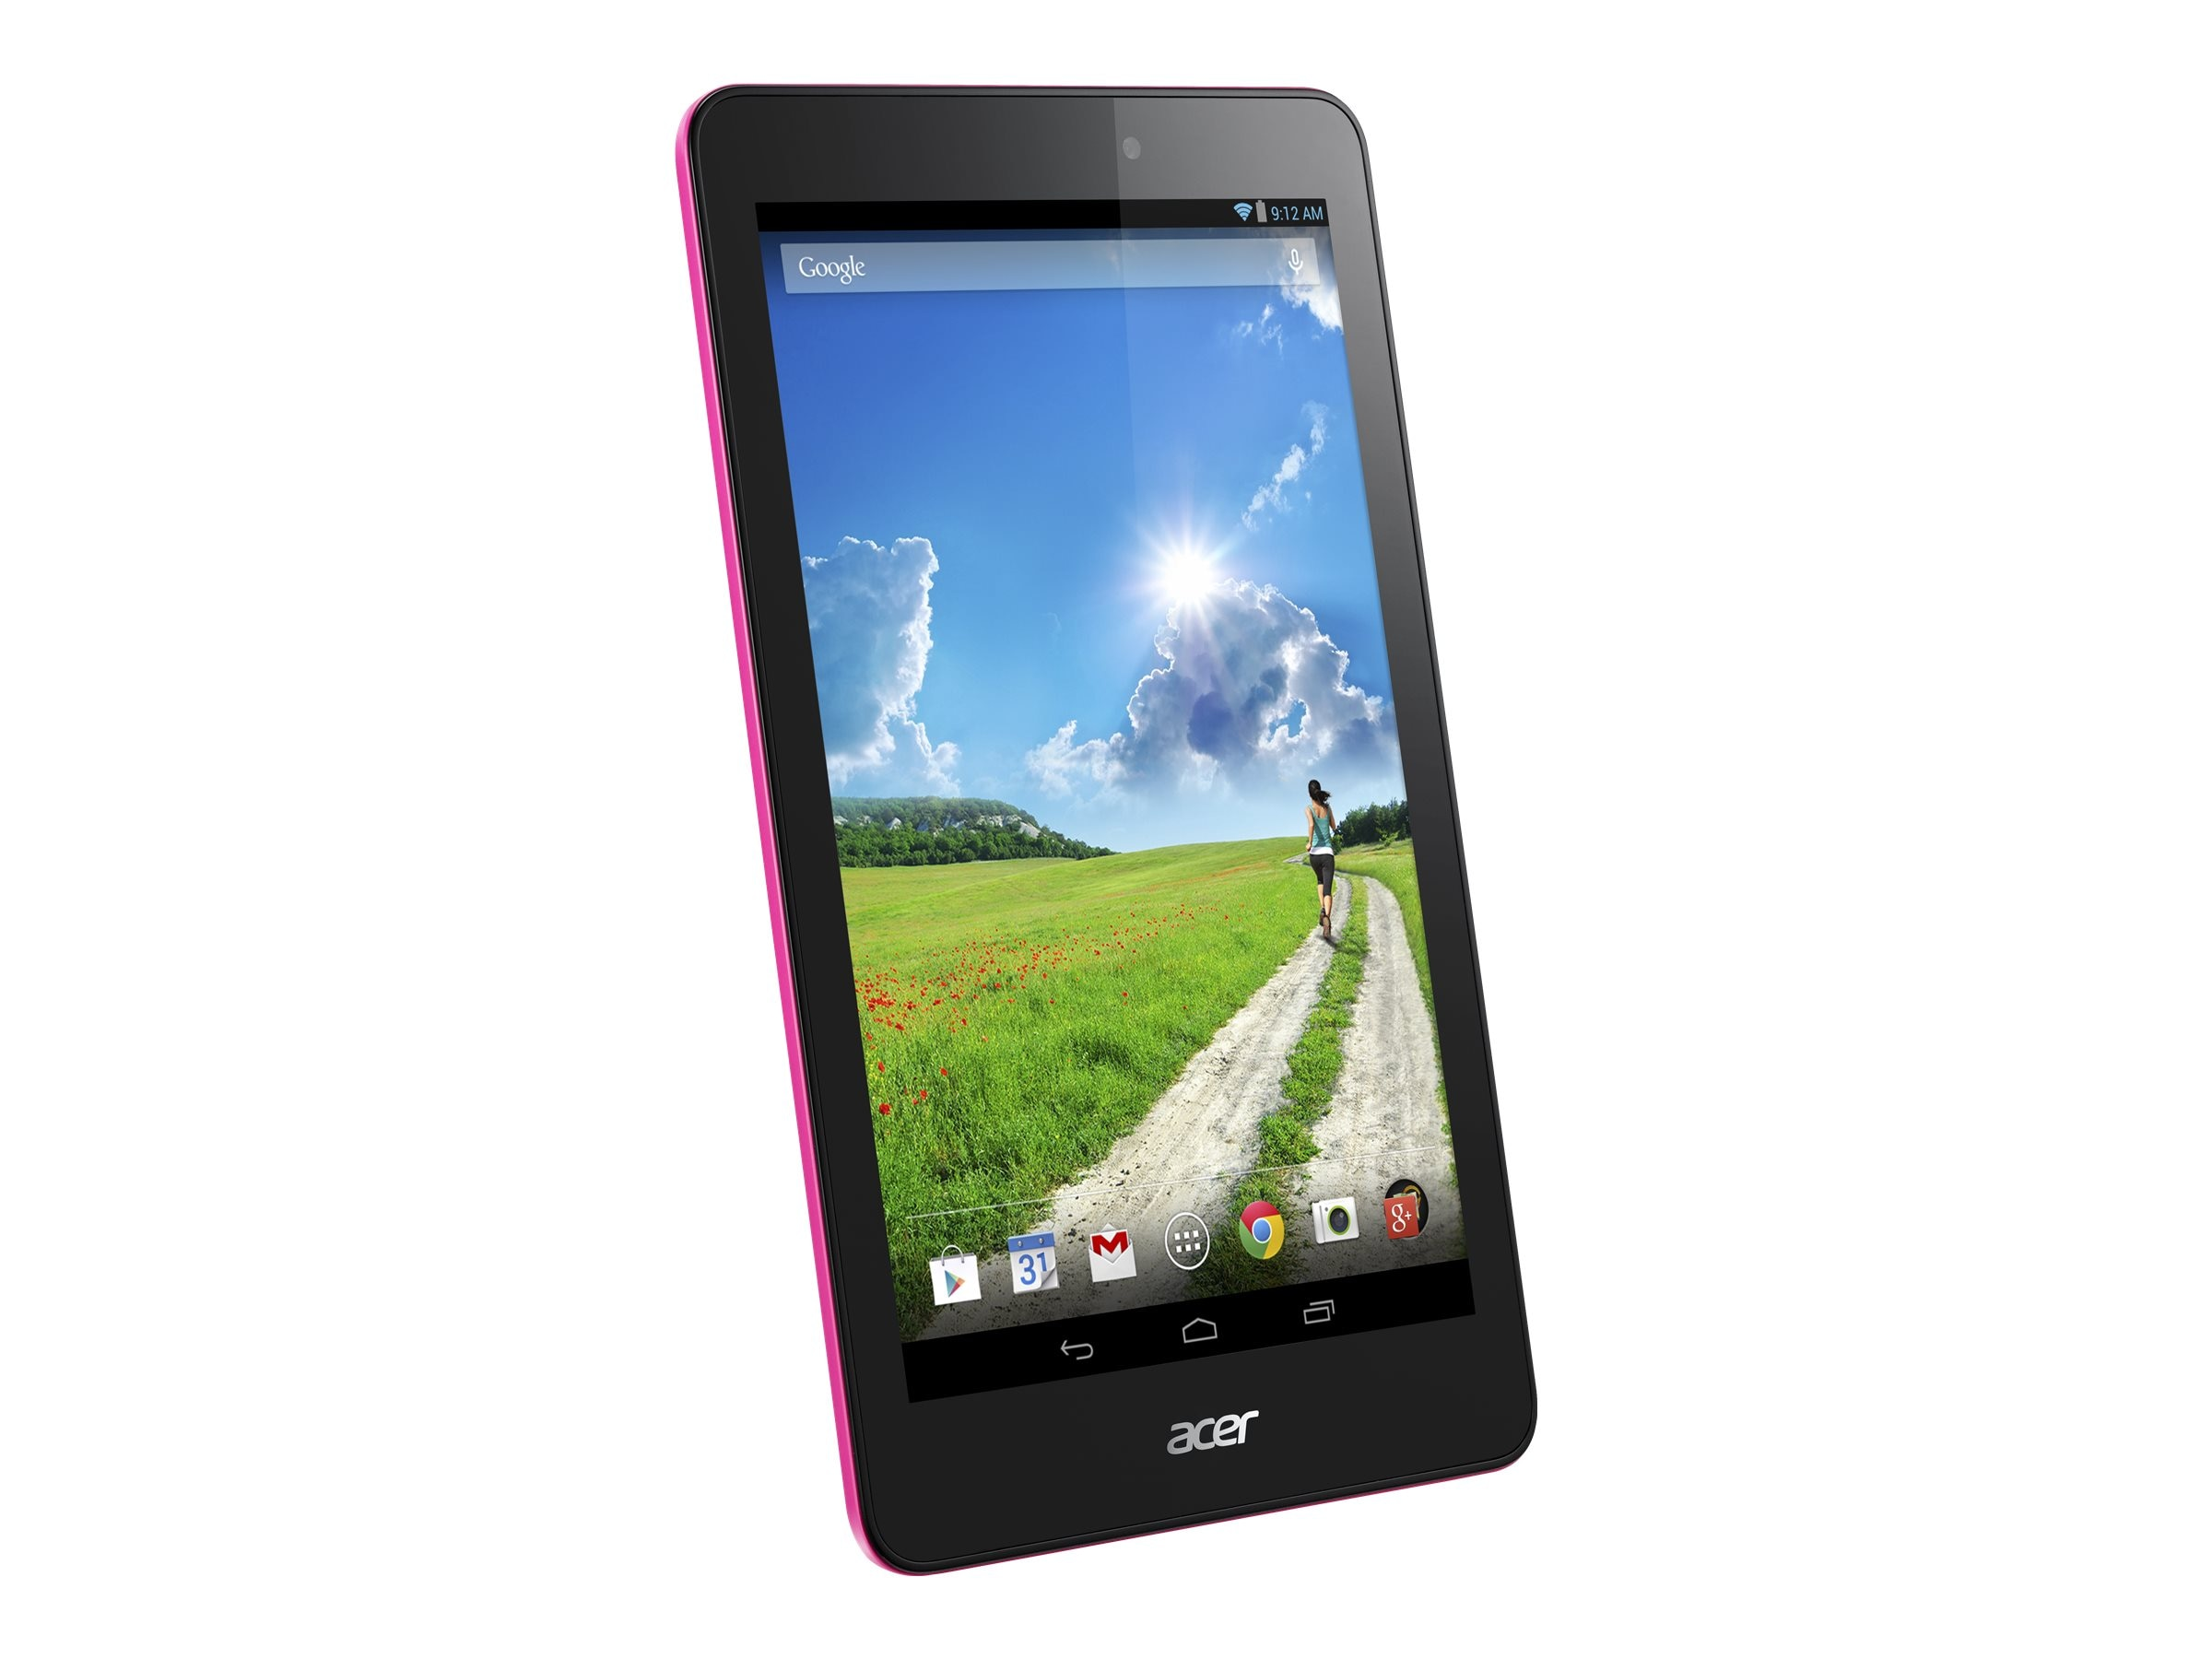 Acer Iconia B1-810-11ZW 1.33GHz processor Android 4.4 (KitKat)